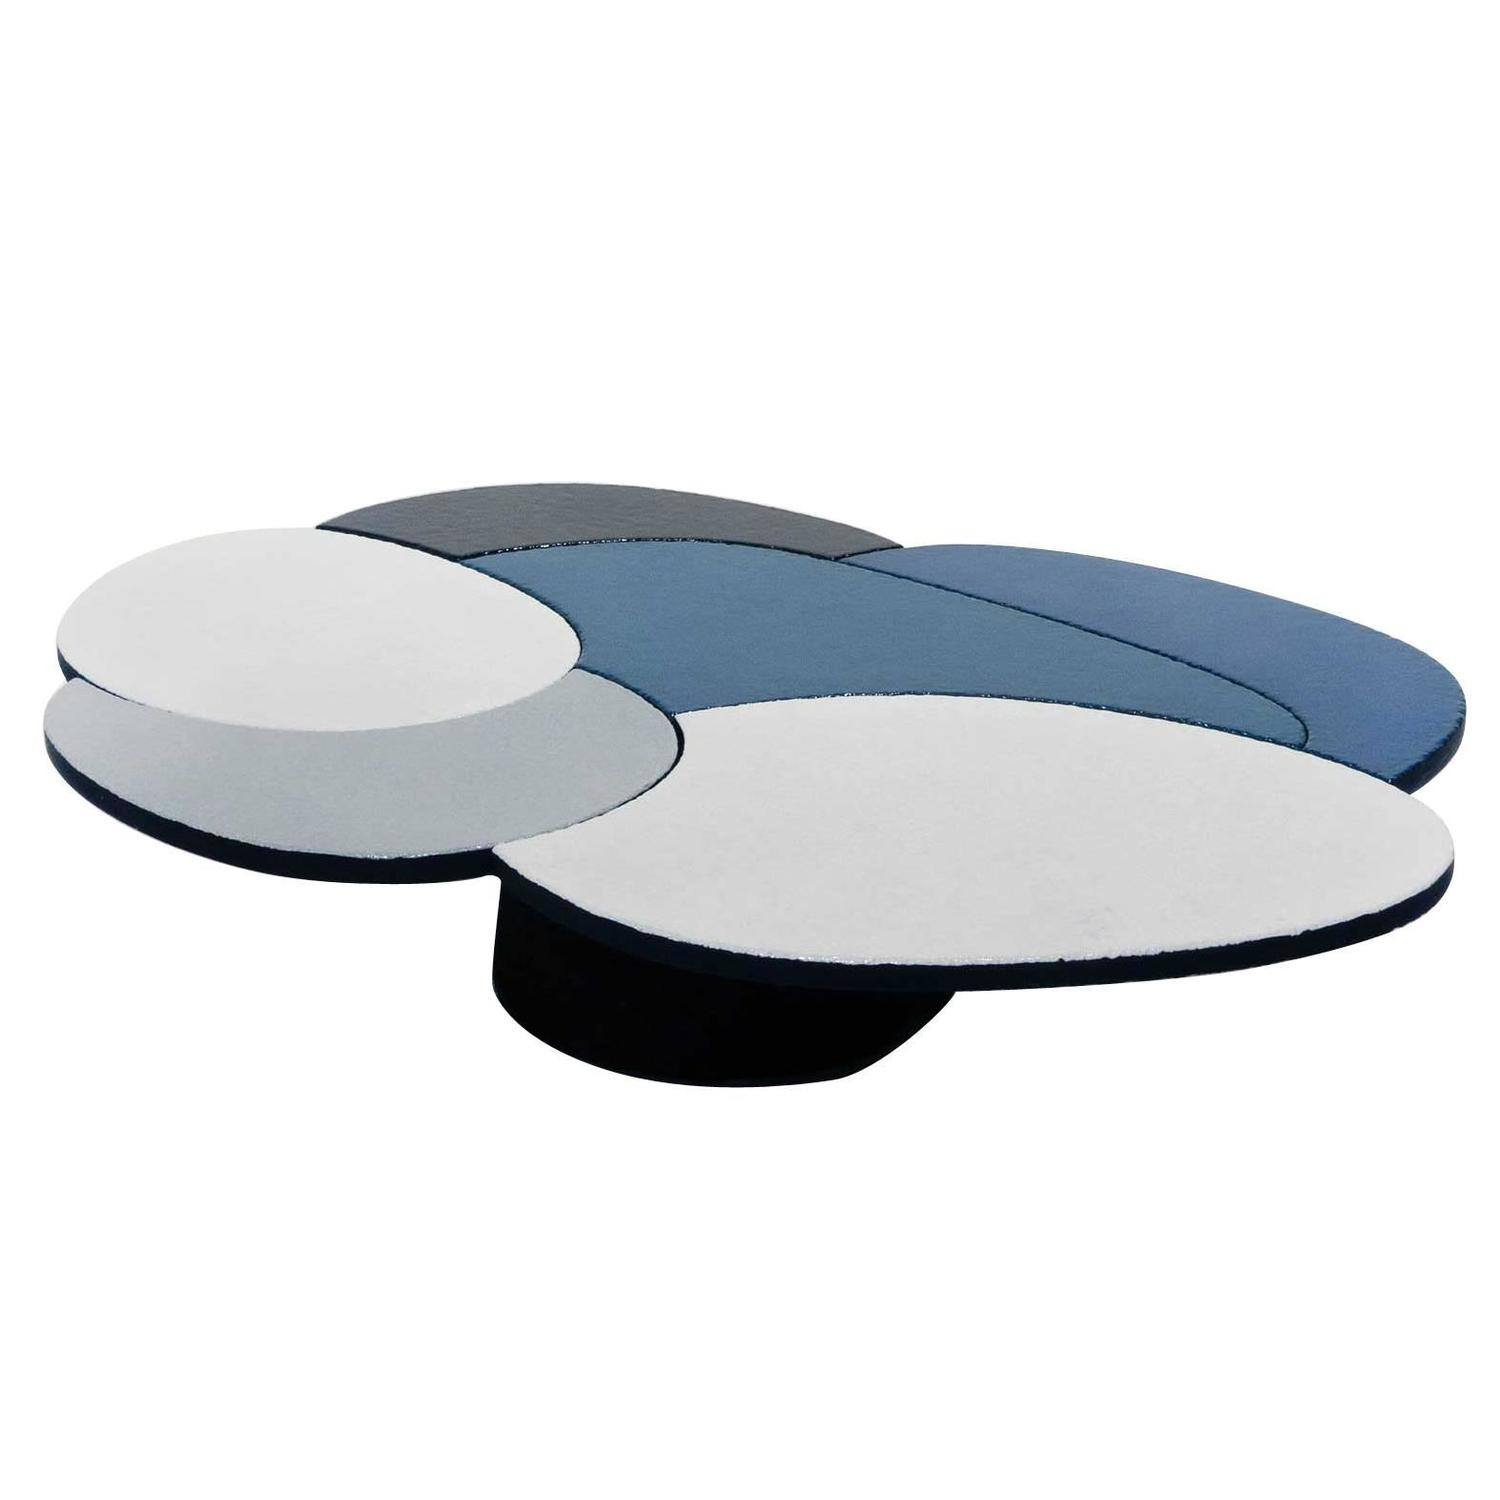 emmanuel babled furniture lighting tables more 26 for sale etna stone coffee table by emmanuel babled